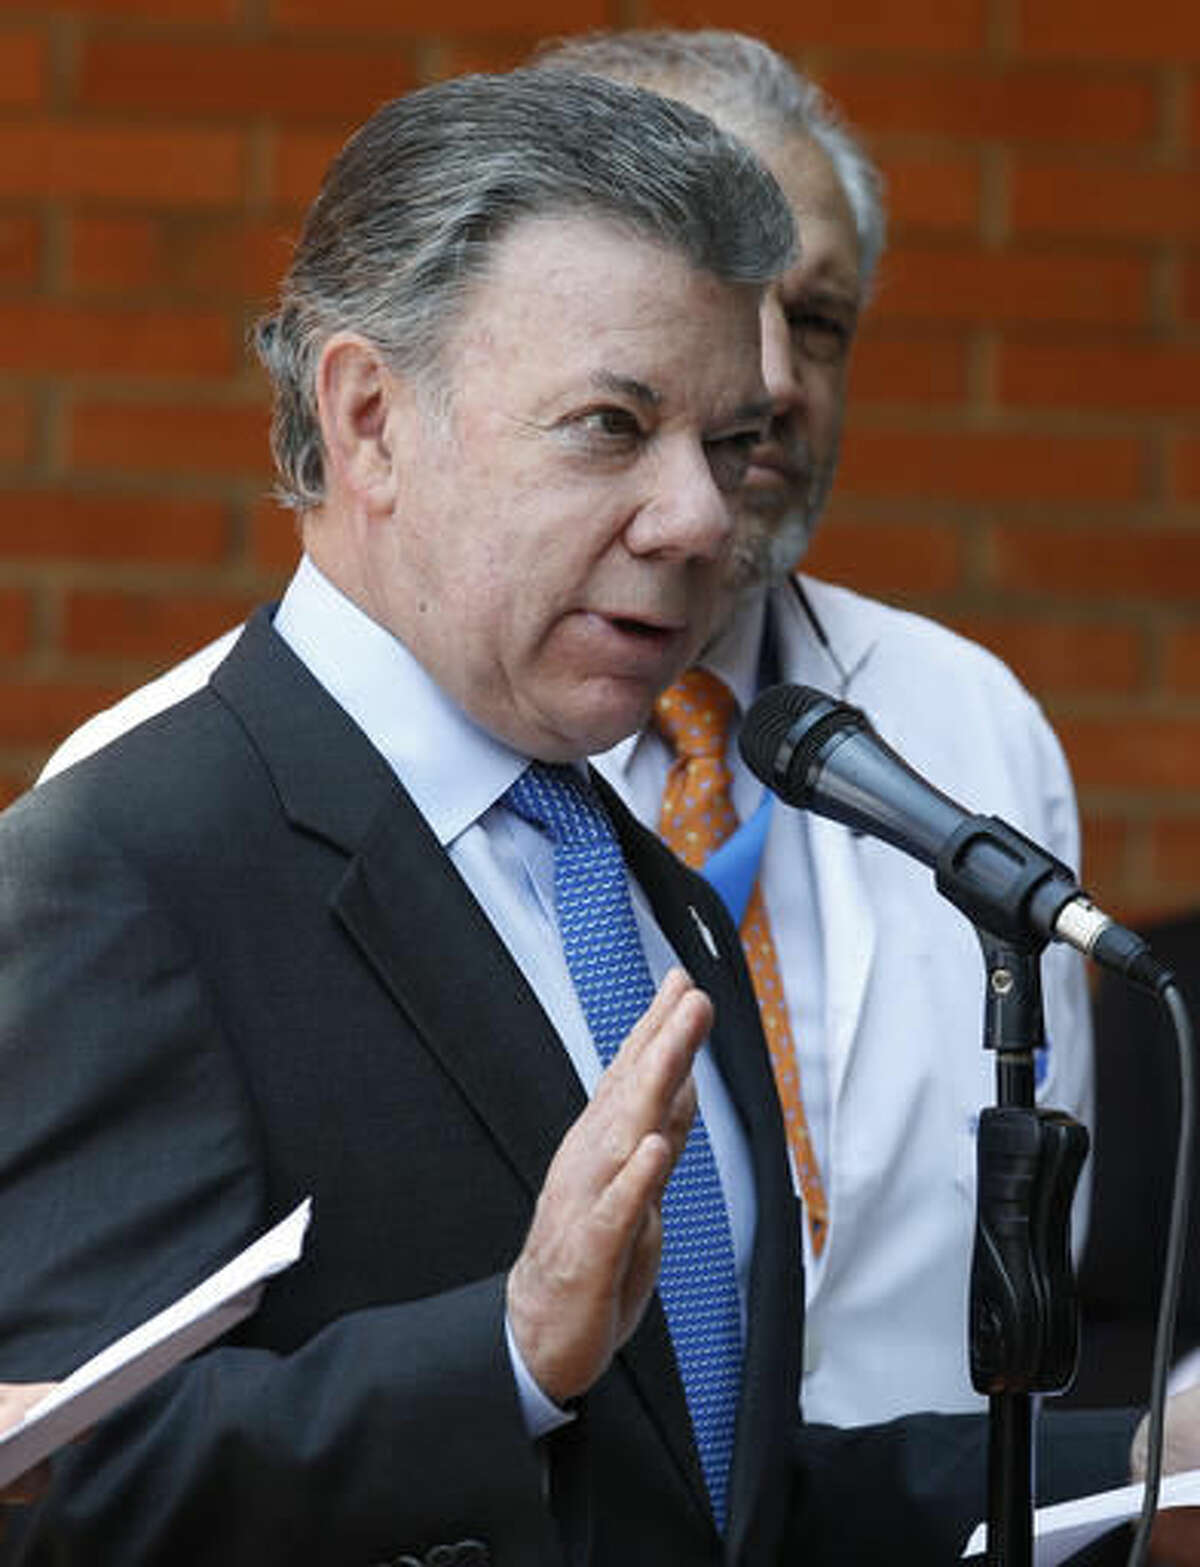 Colombia's President Juan Manuel Santos gives a press conference at the Santa Fe clinic in Bogota, Colombia, Monday, Nov. 21, 2016. Santos said he will undergo radiation to treat high levels of a prostate-specific antigen that his doctors say don't represent a return of cancer. (AP Photo/Fernando Vergara)